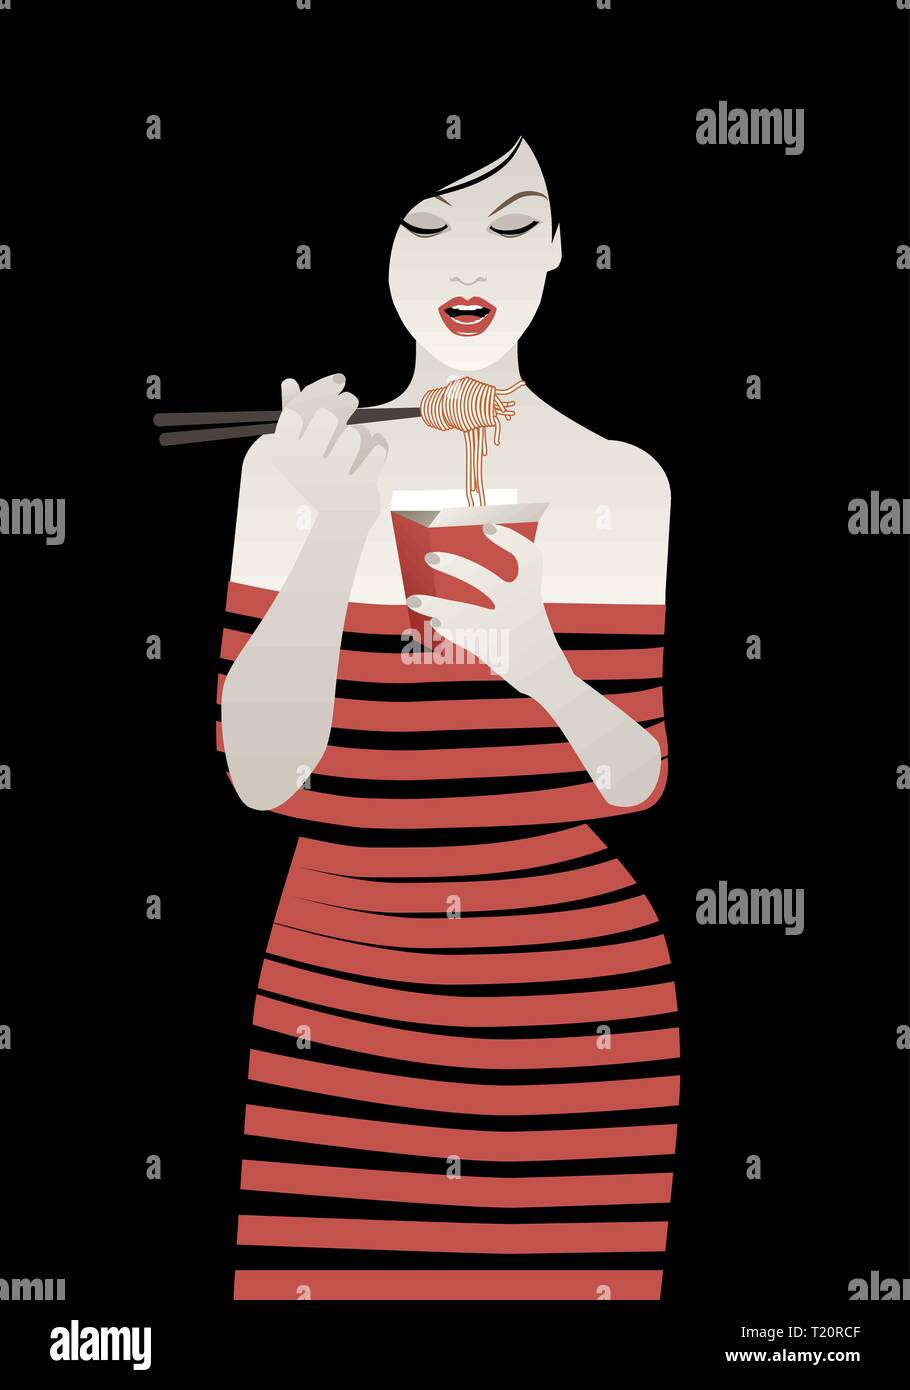 Beautiful girl wearing striped clothes eating spaghetti or noodles with chopsticks. Vector illustration on black background - Stock Vector